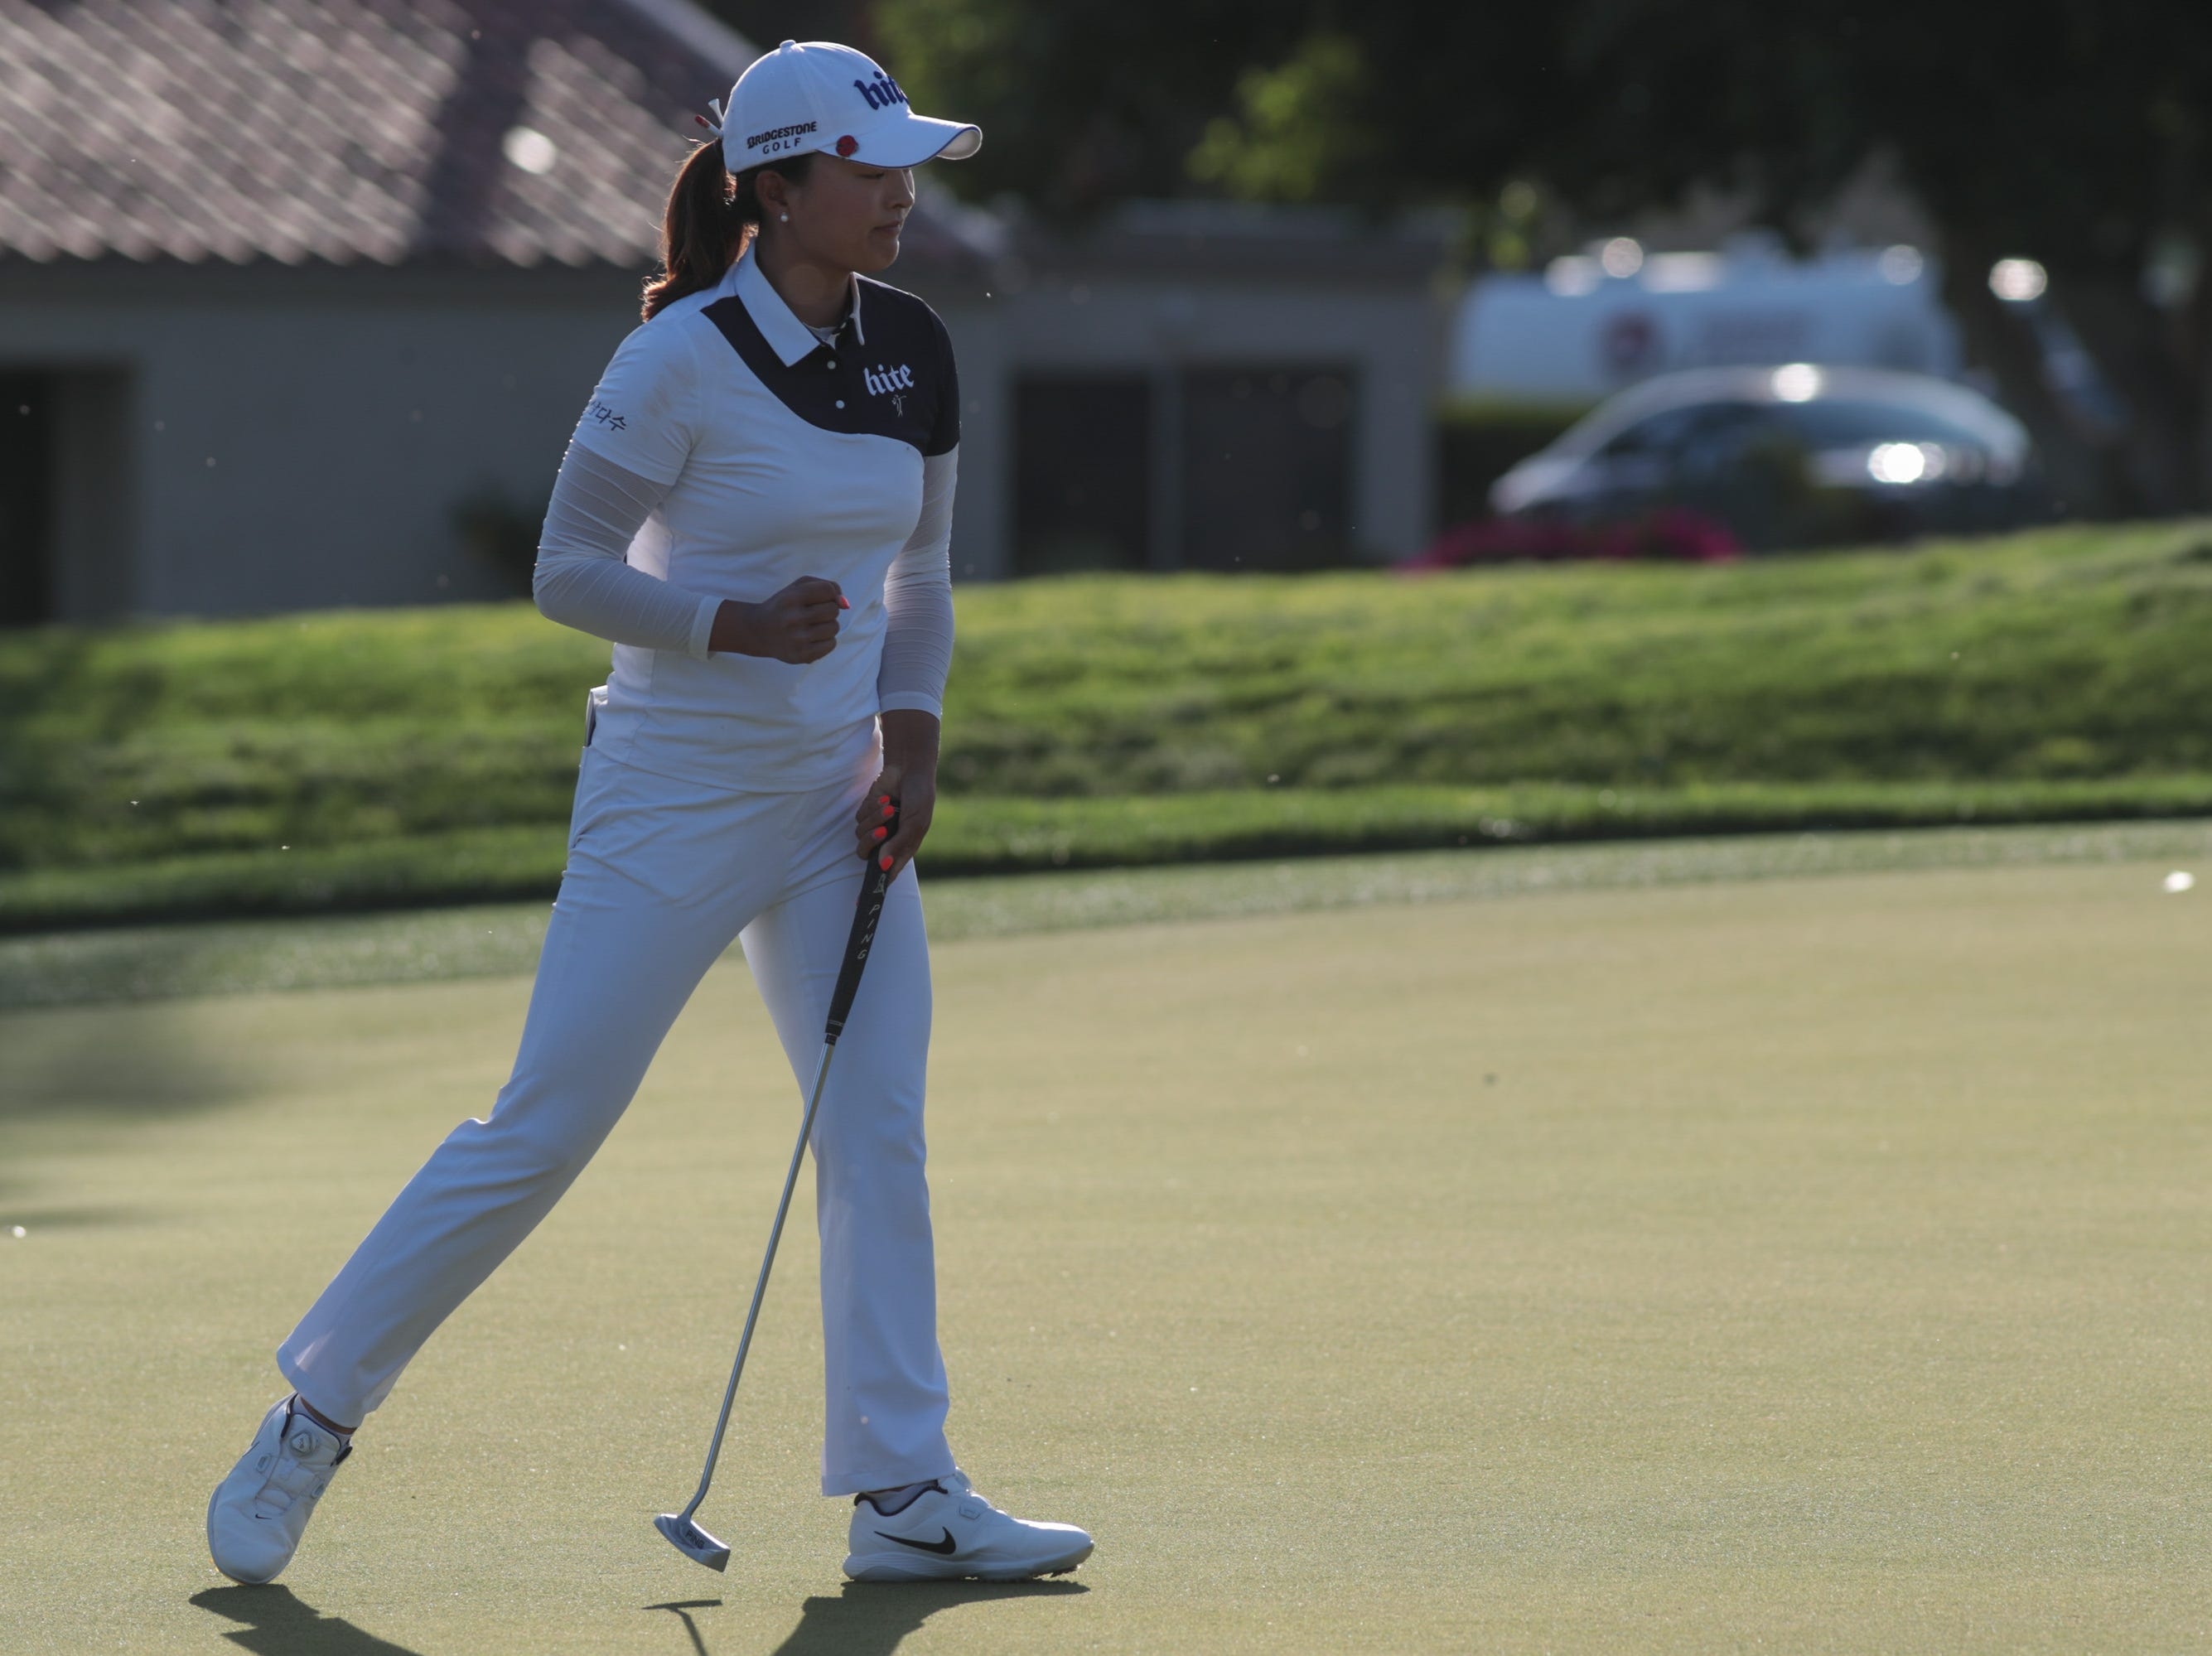 Jin Young Ko reacts after making a putt on the 17th hole of the Dinah Shore Course at the ANA Inspiration, Rancho Mirage, Calif., April 6, 2019.